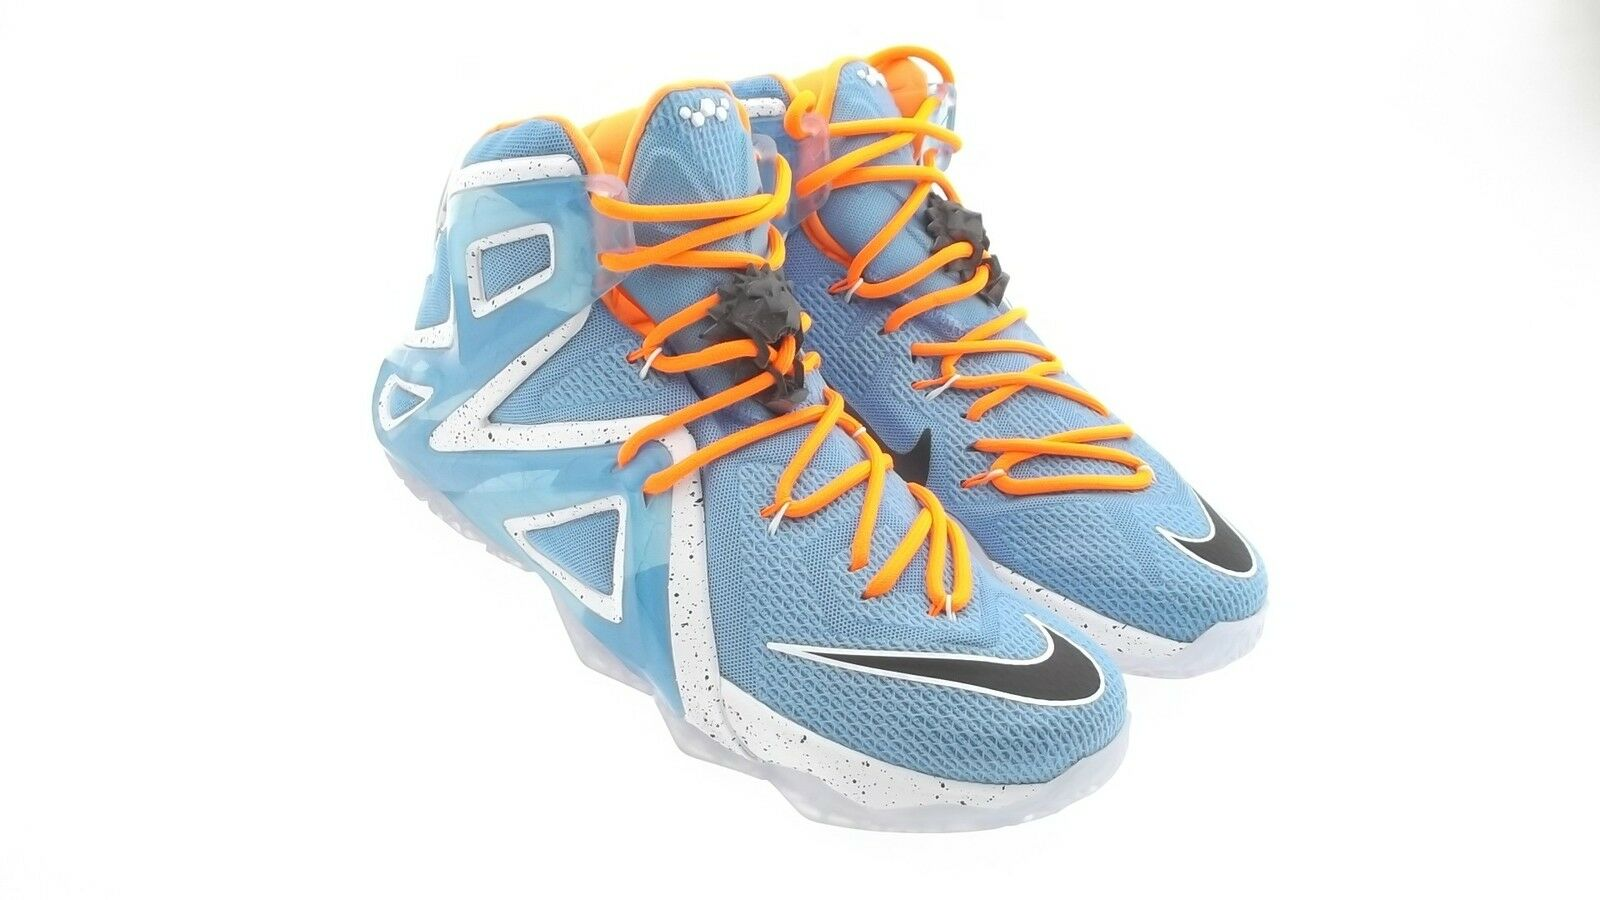 724559-488 Nike Men Lebron XII Elite blue Wild casual shoes